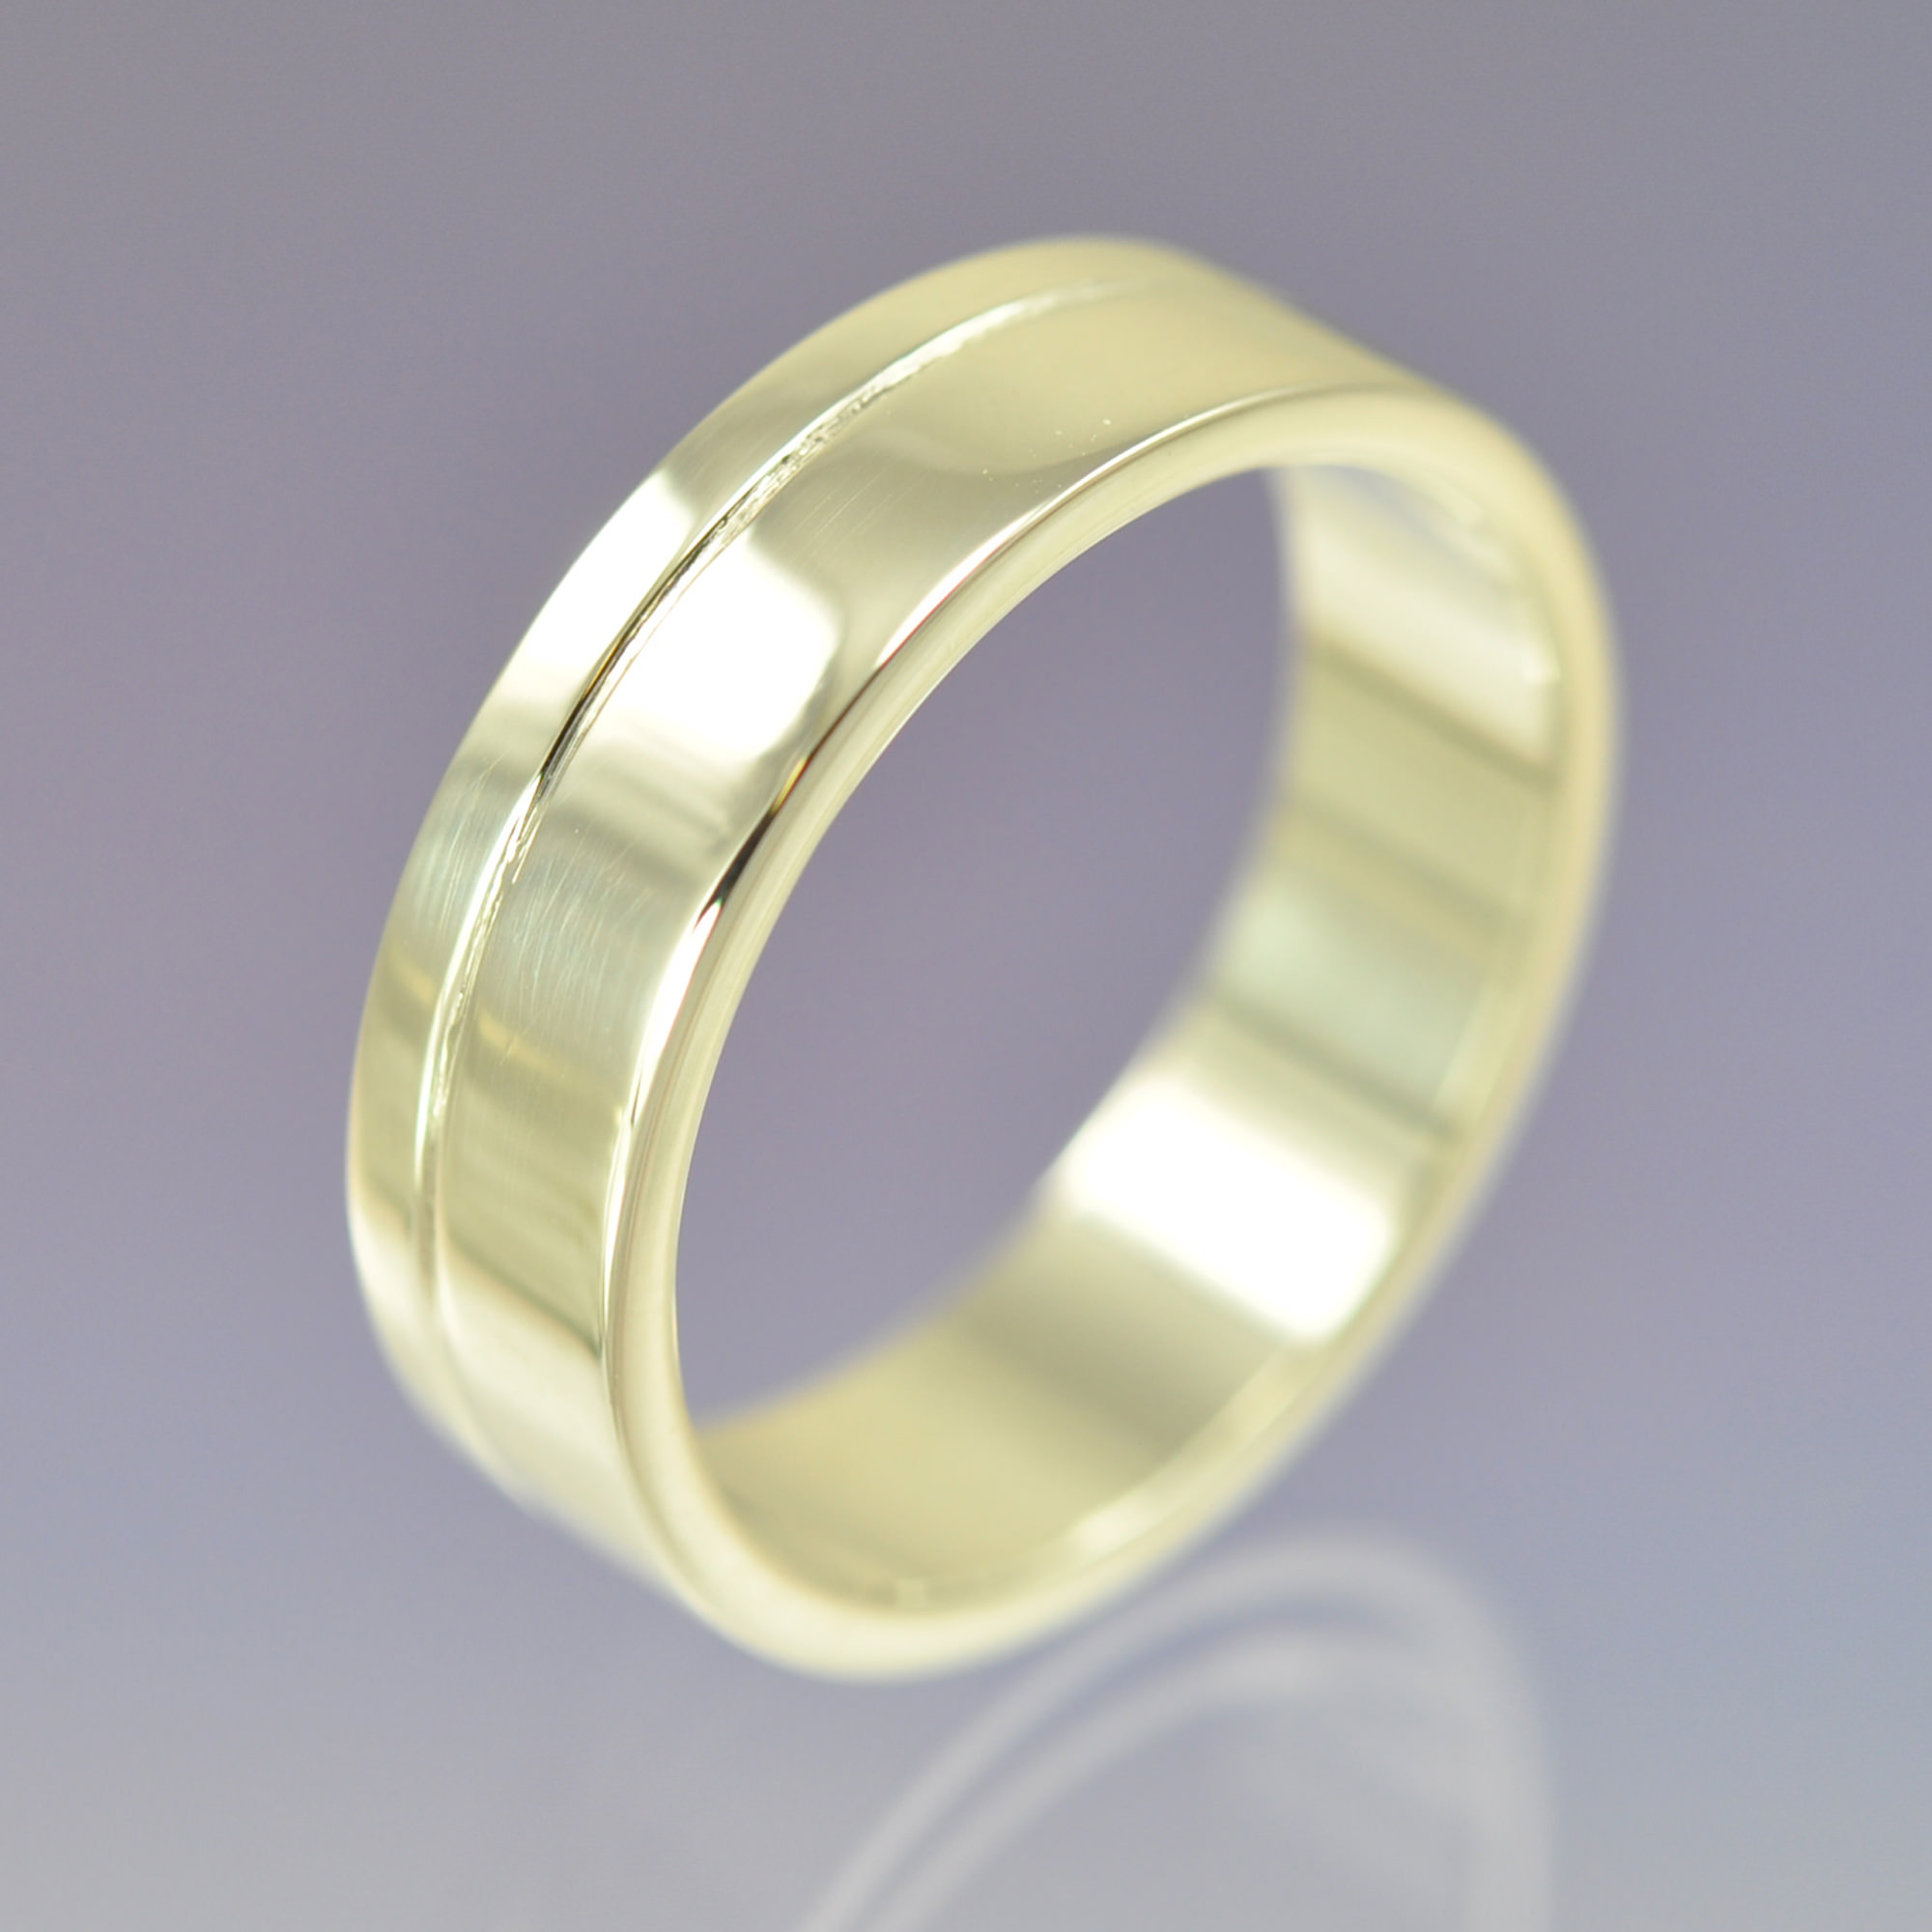 your recycled wedding flat rings media hers made and yellow brushed sizes band in his set ring gold